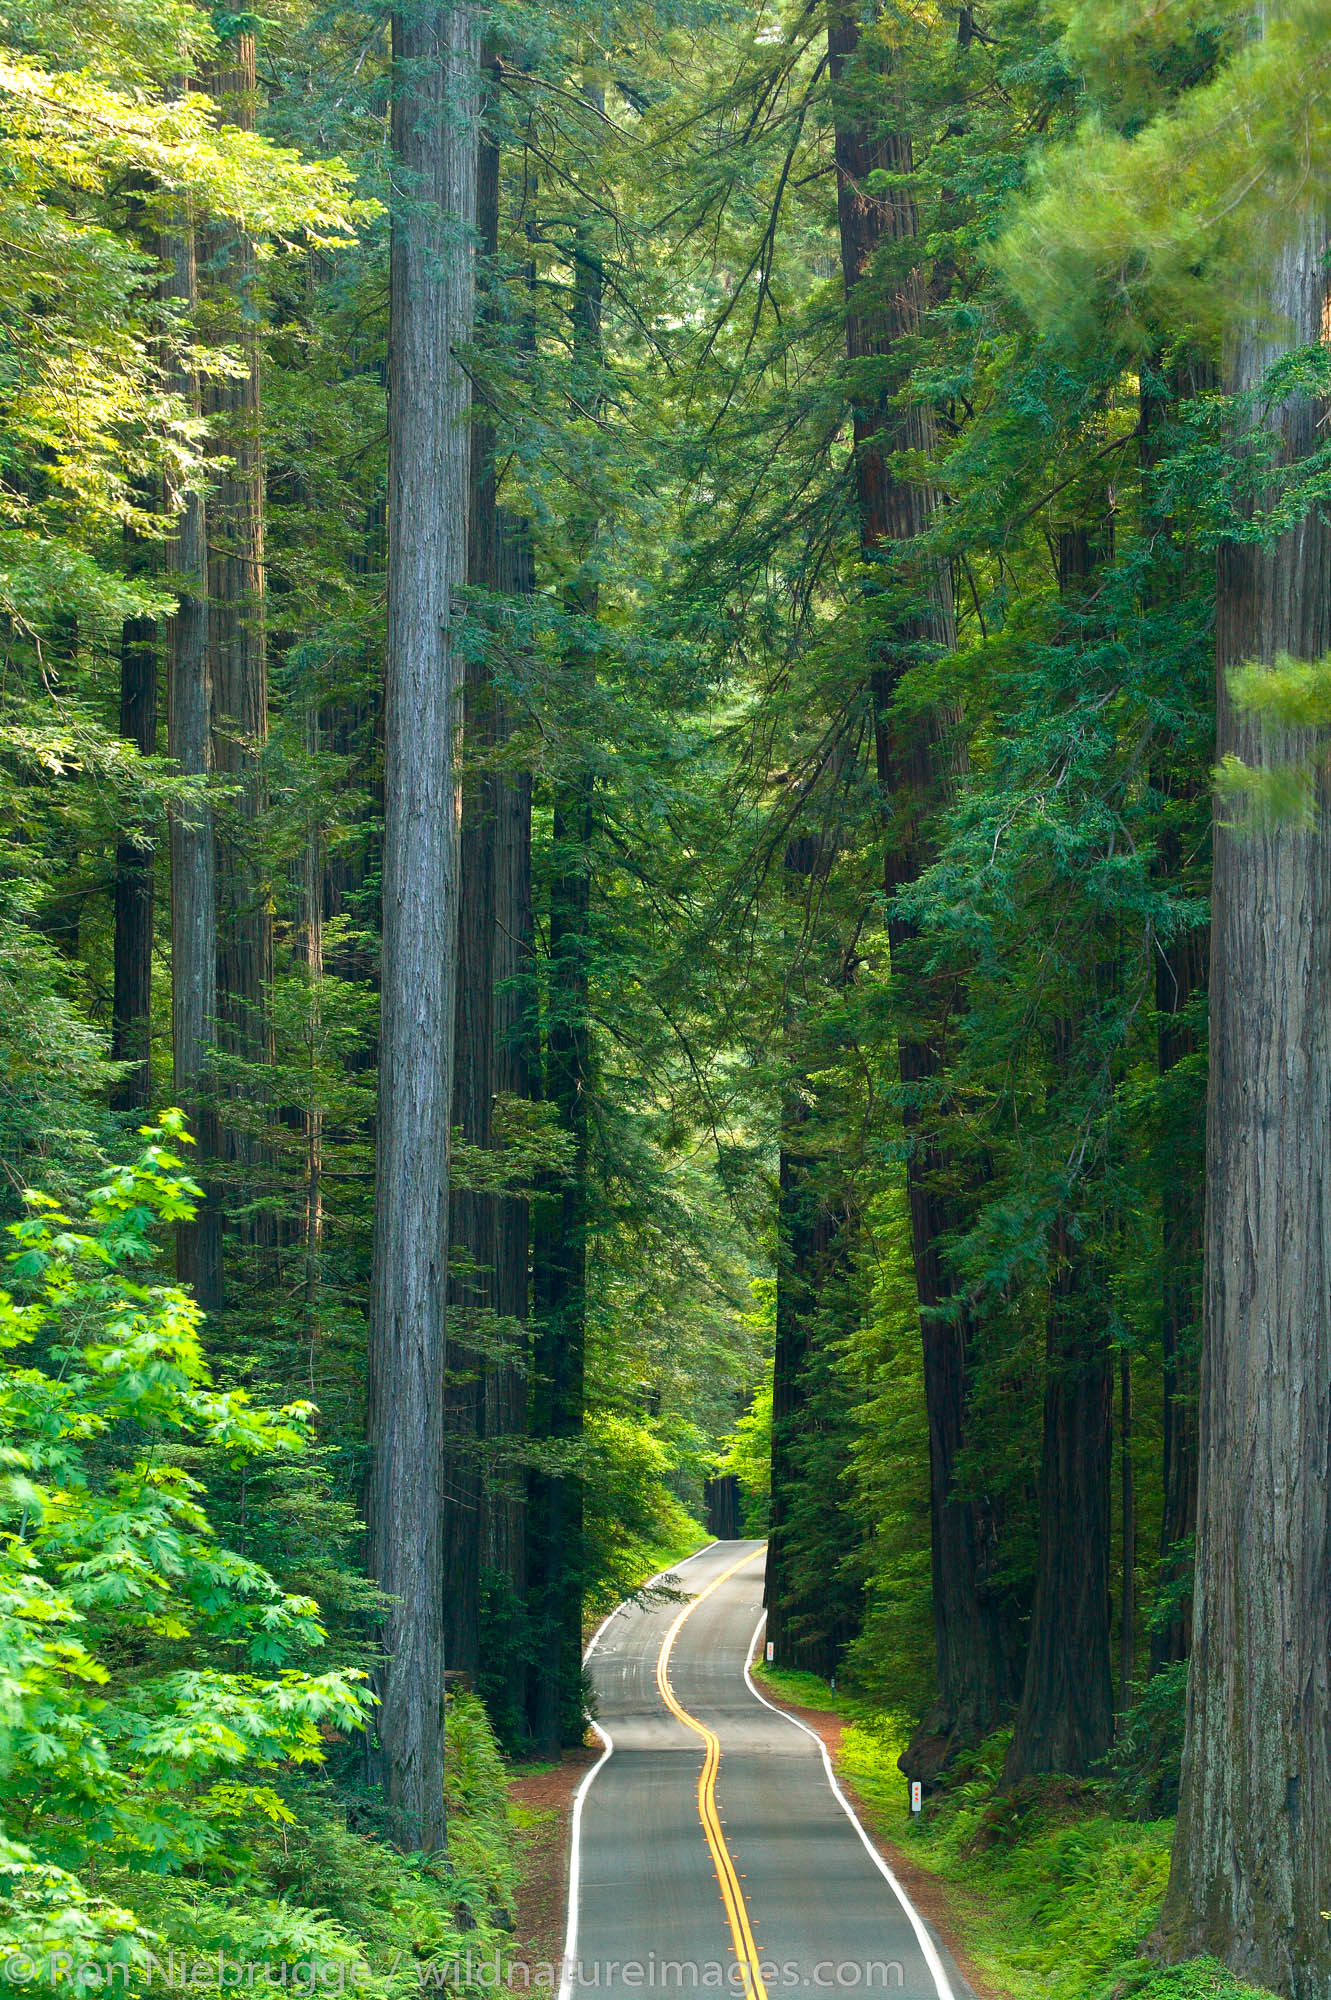 The Avenue of the Giants, Humboldt Redwoods State Park, California.